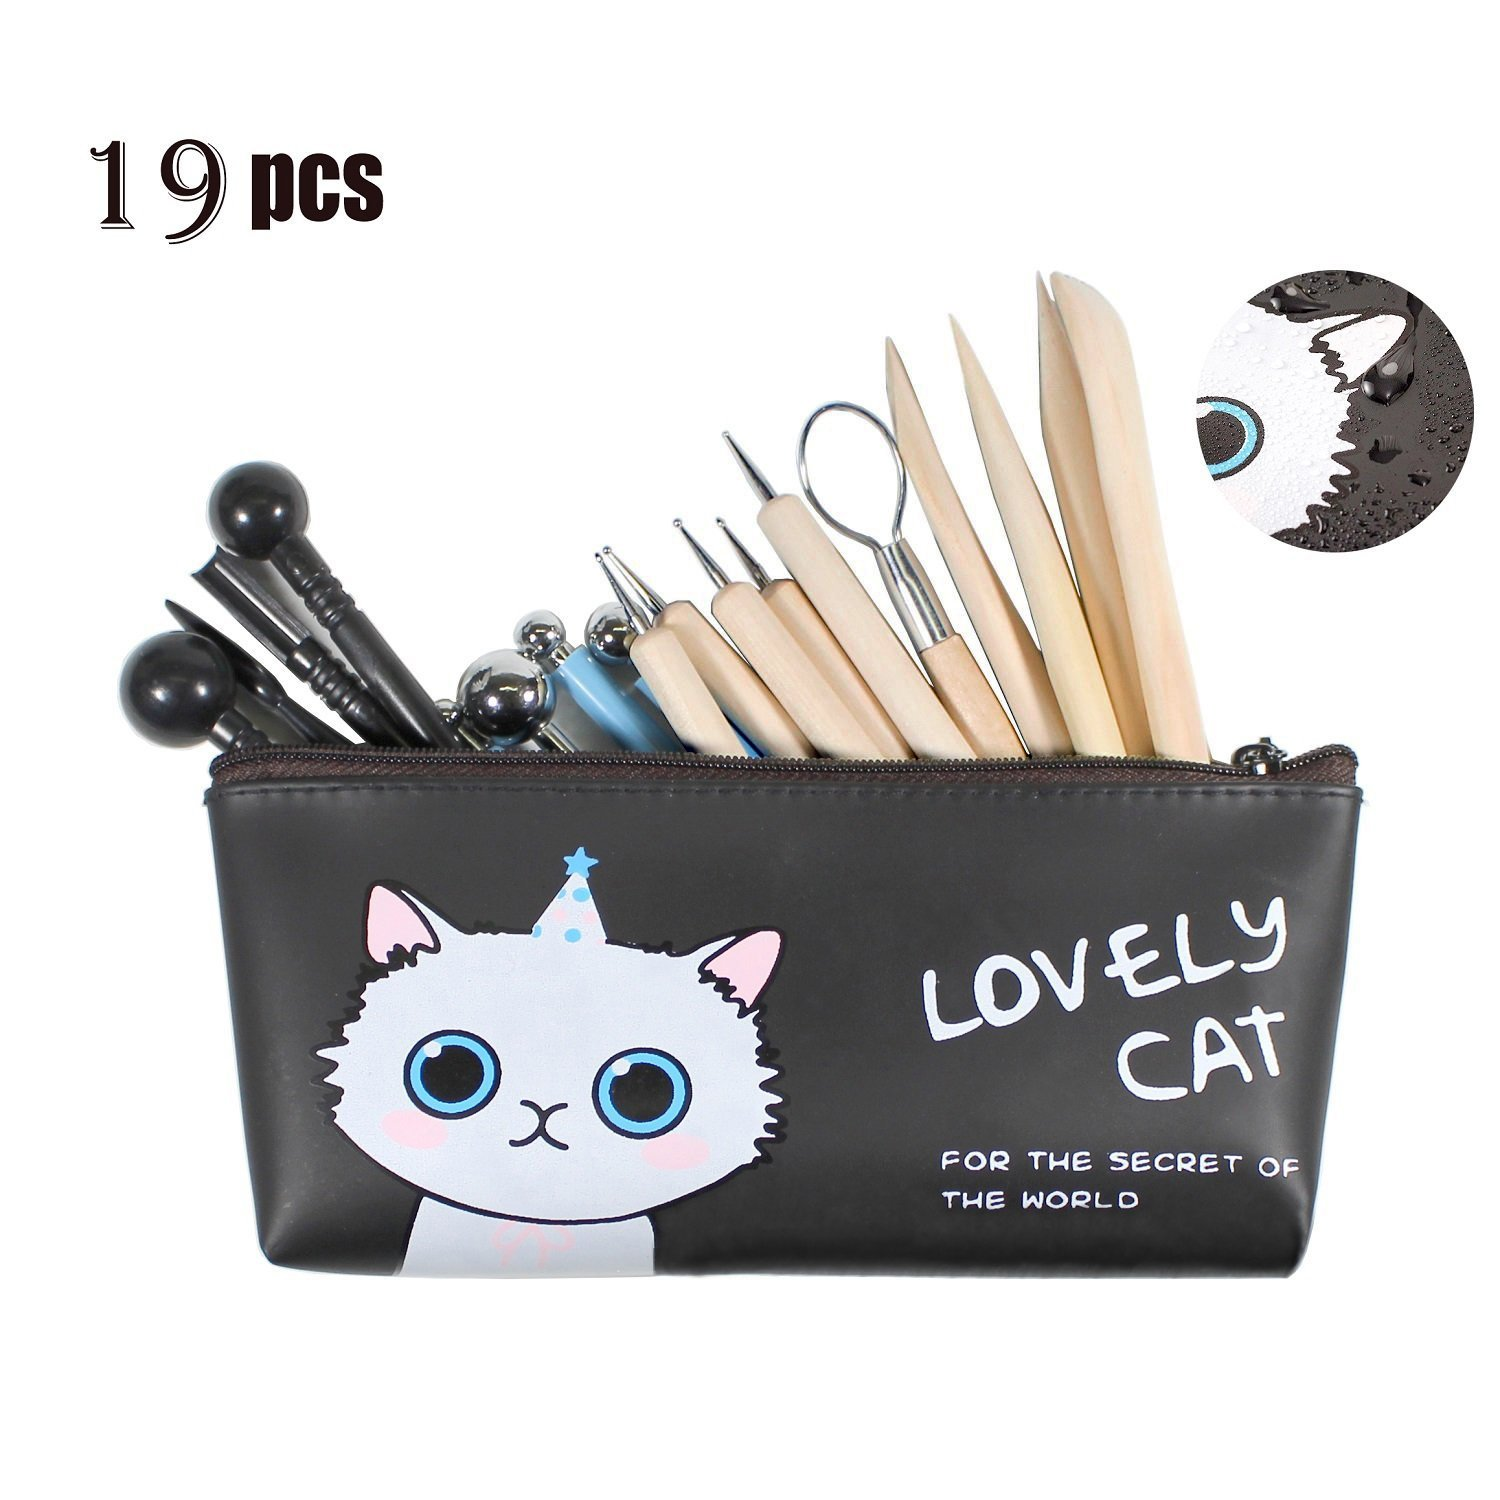 Asery Polymer Clay Tools 19Pcs Modeling Clay tools set Ball Styluses Tool Clay Wooden Dotting Tools with Storage Case For Pottery Modeling Clay Sculpture APMCS1 4336898869